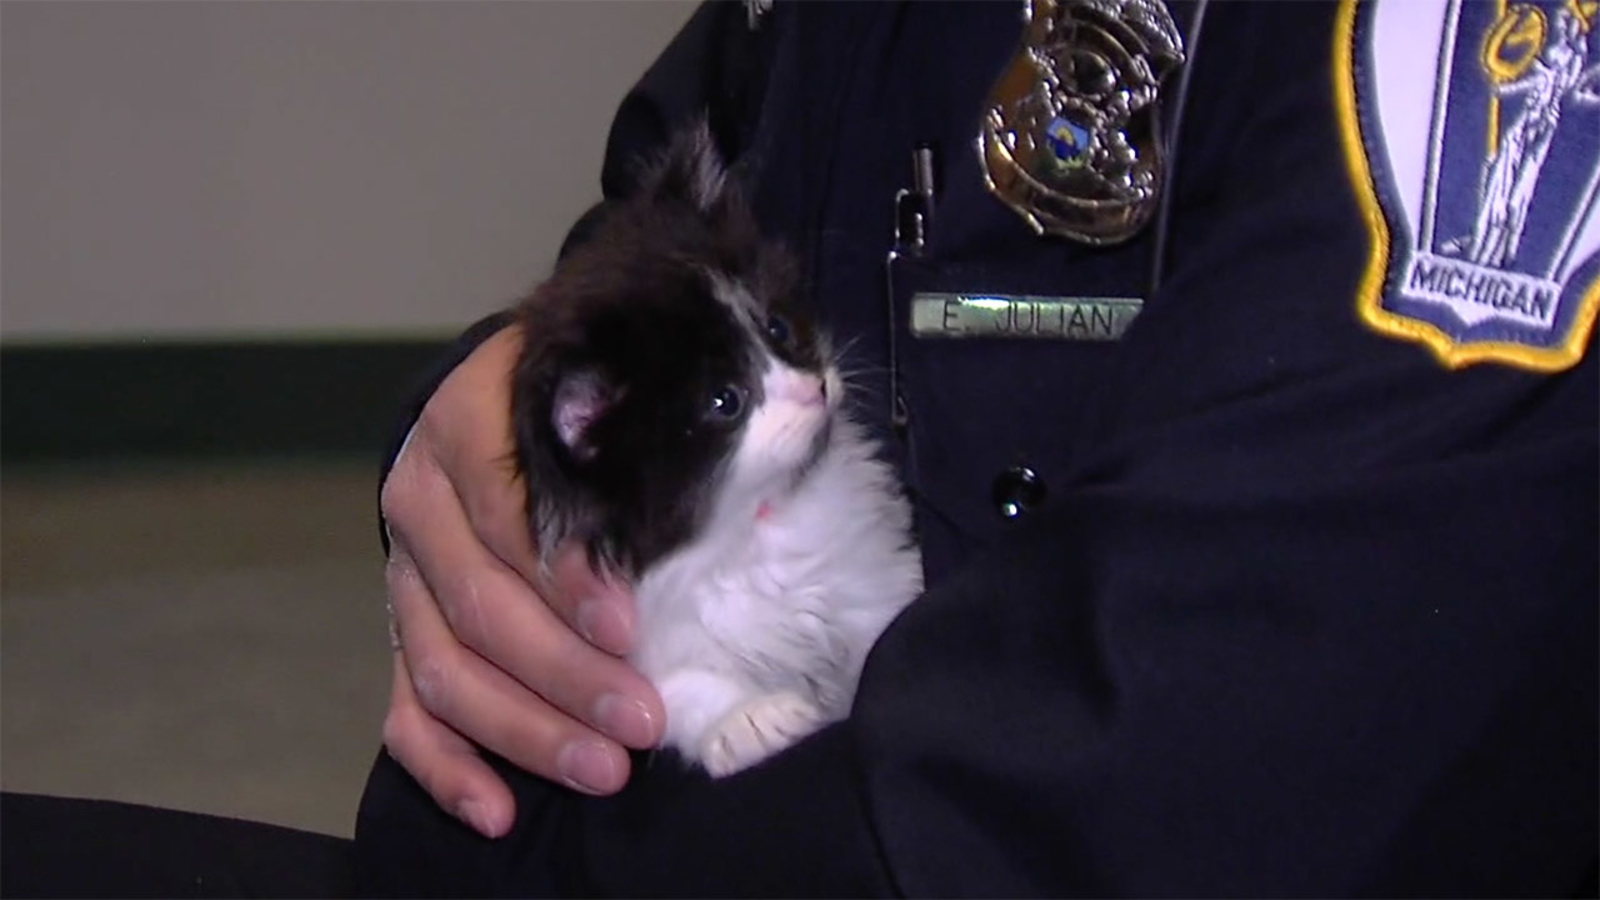 Kitty cop? This Mich  police department is on the hunt for police cat